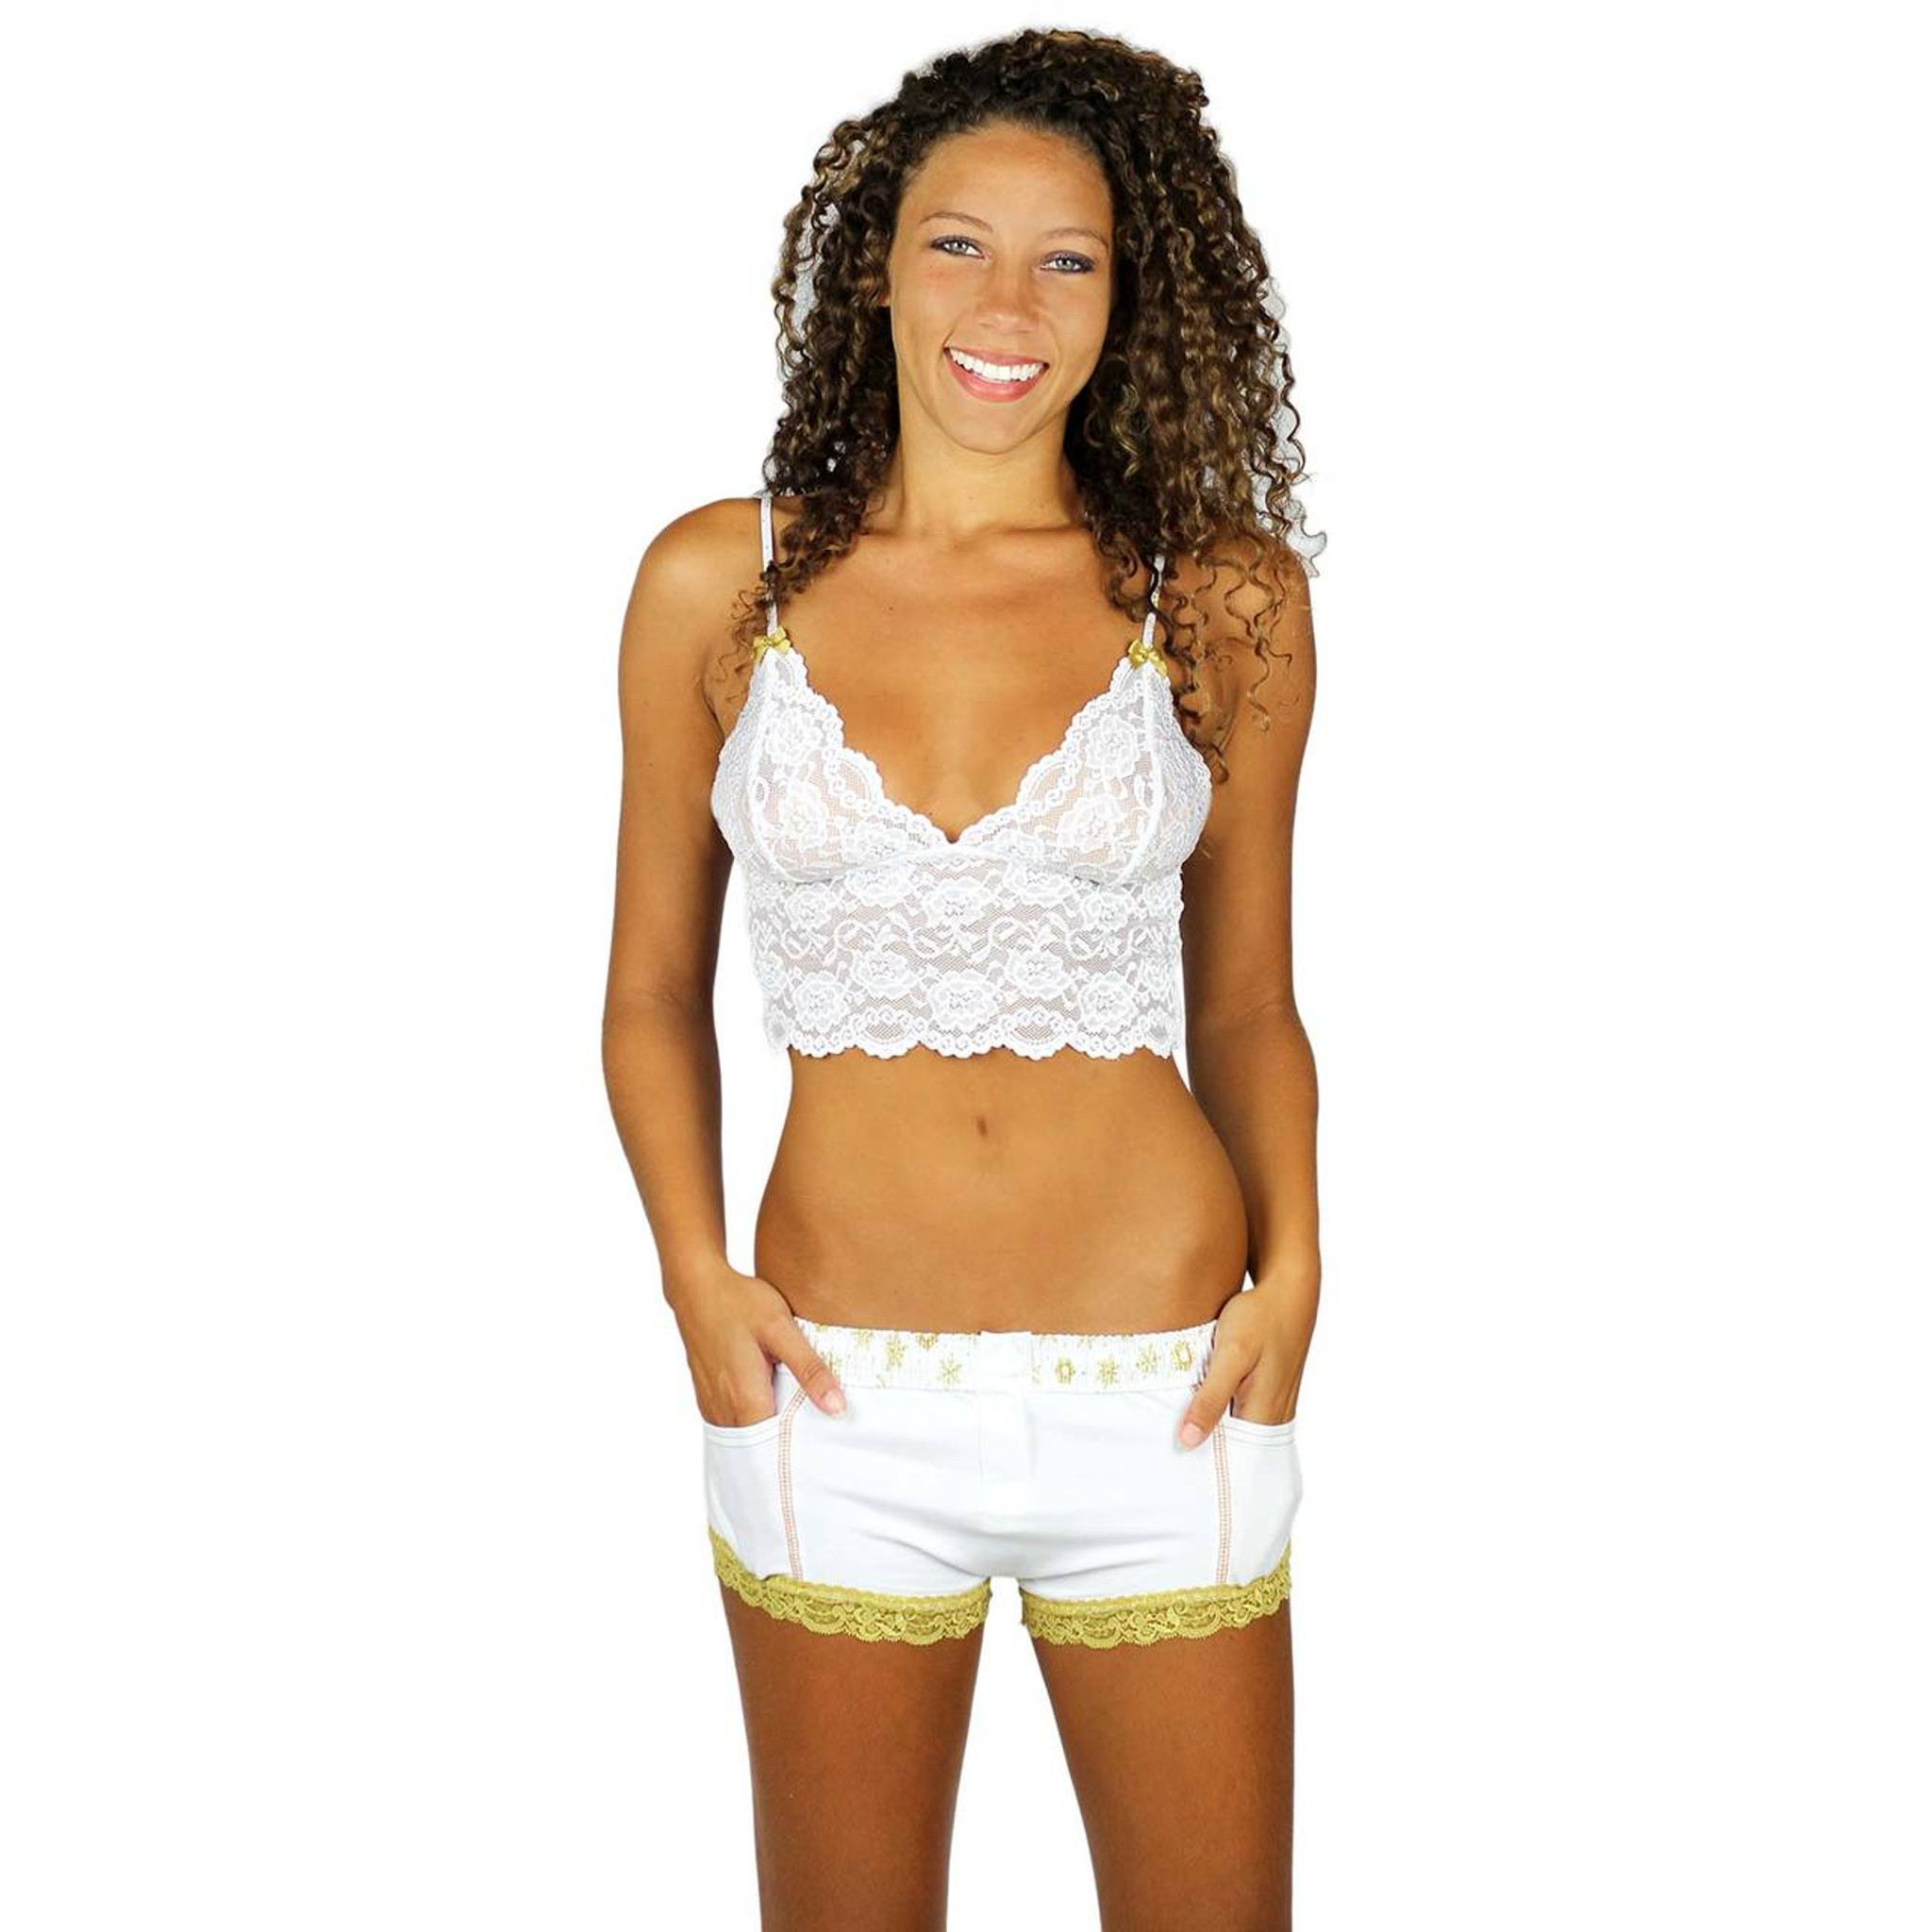 e67e9c2c65 White Lace Bralette Cami with Frozen Gold Straps Sexy White Lace Camisole  to pair with our White Cotton Boxer Briefs for Women.